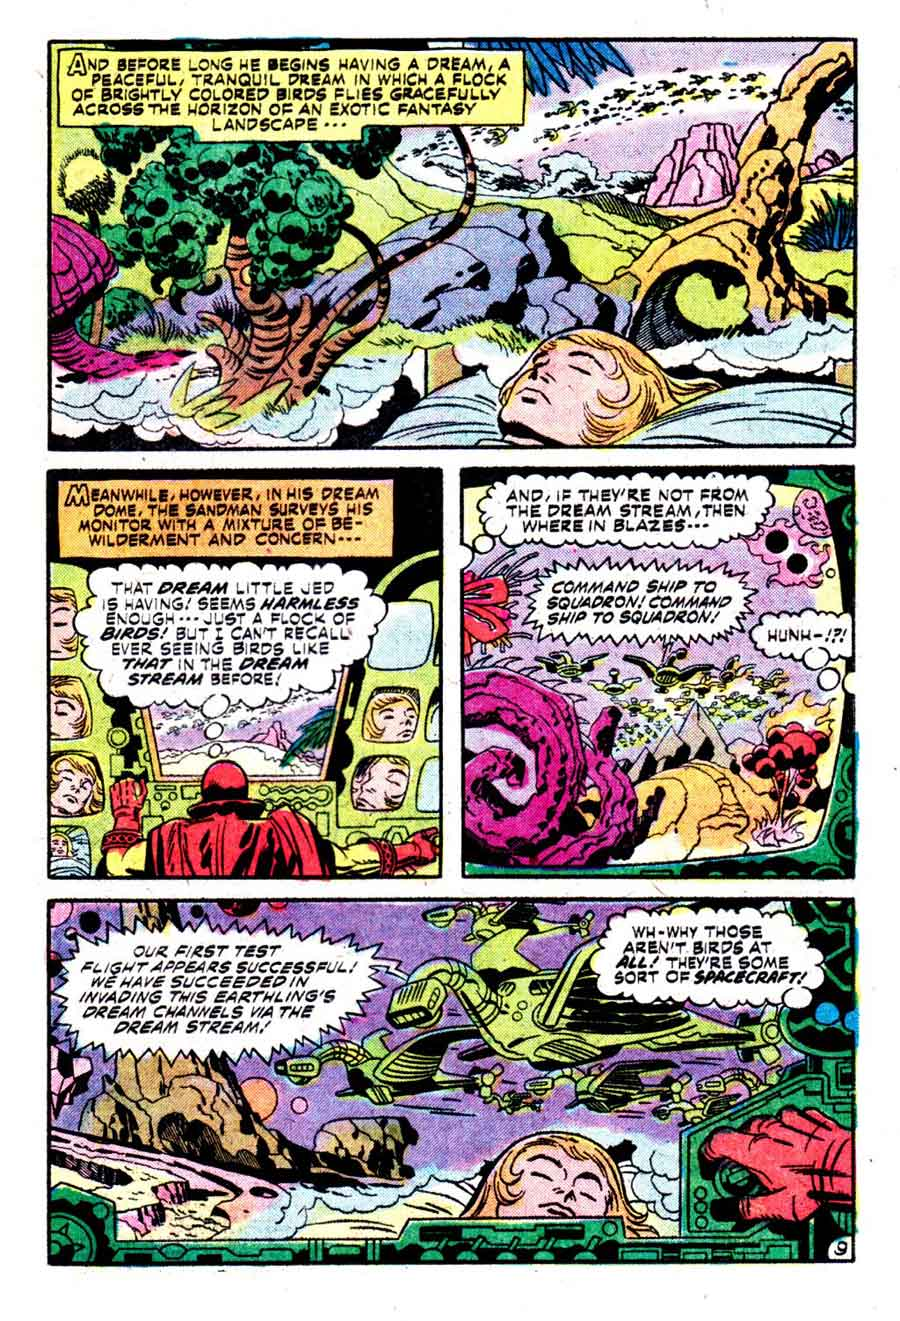 The Sandman v1 #4 dc bronze age comic book page art by Jack Kirby